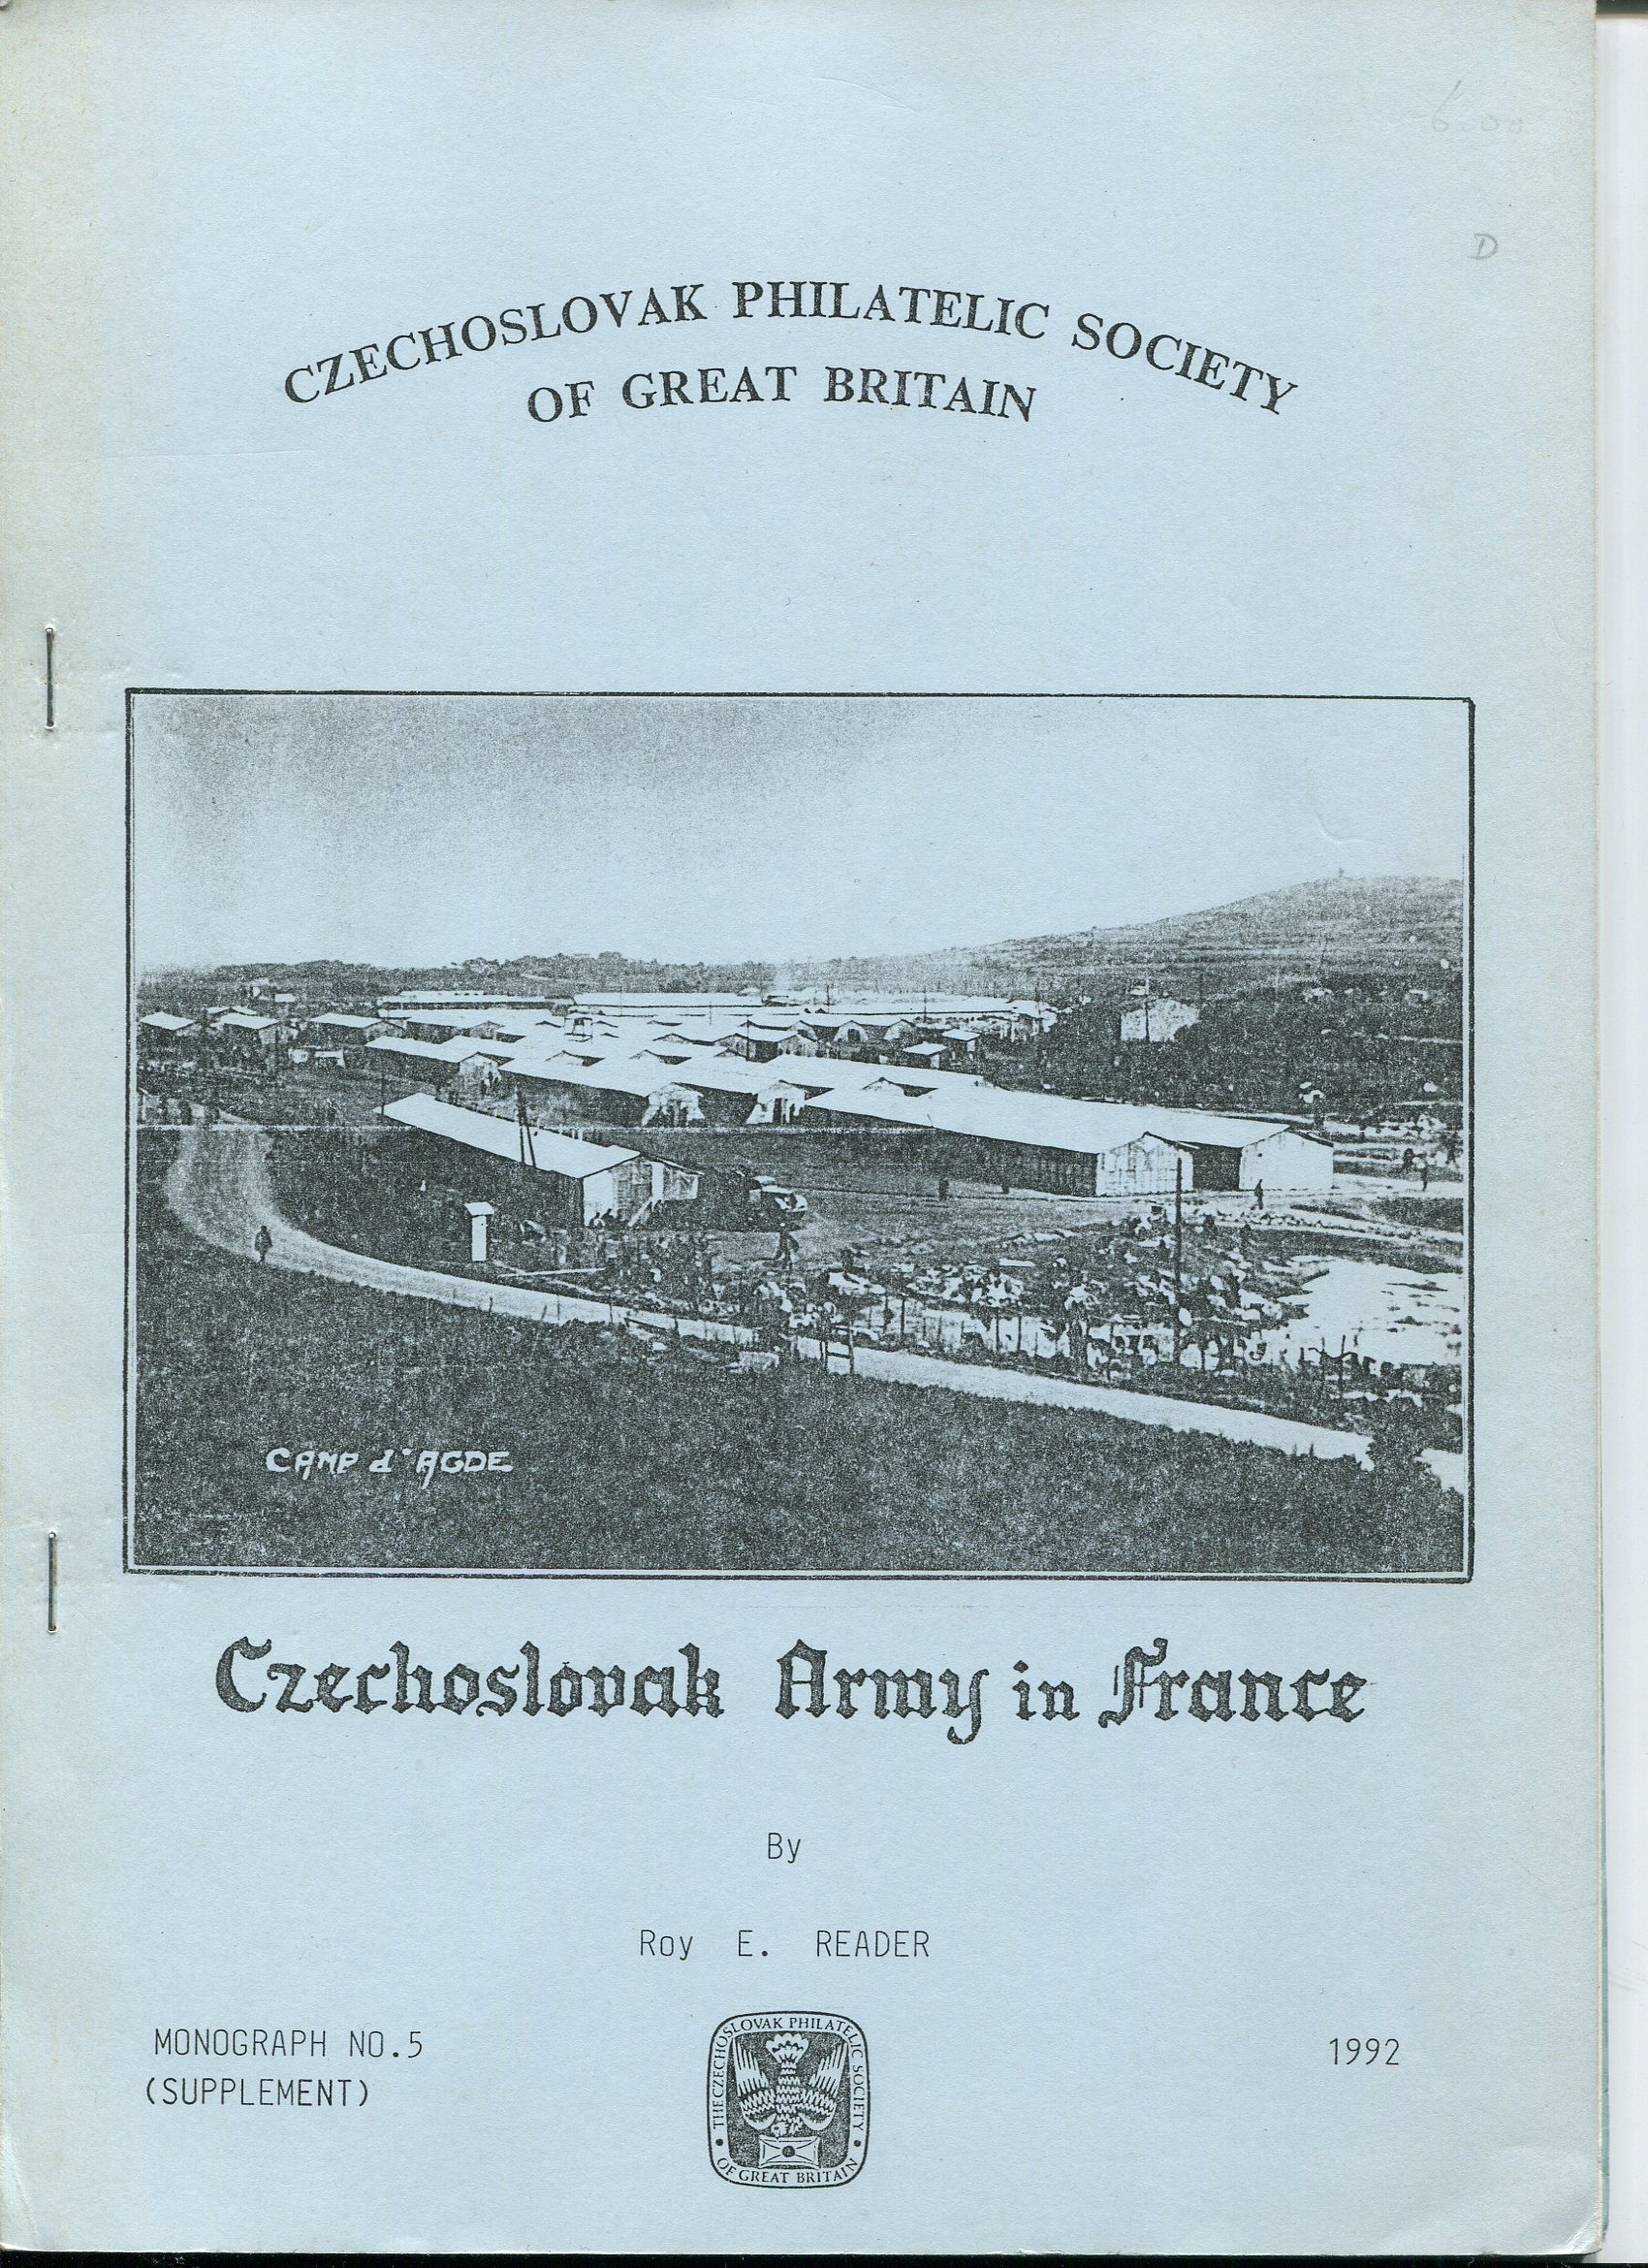 READER Roy E. Czechoslovak Army in France.